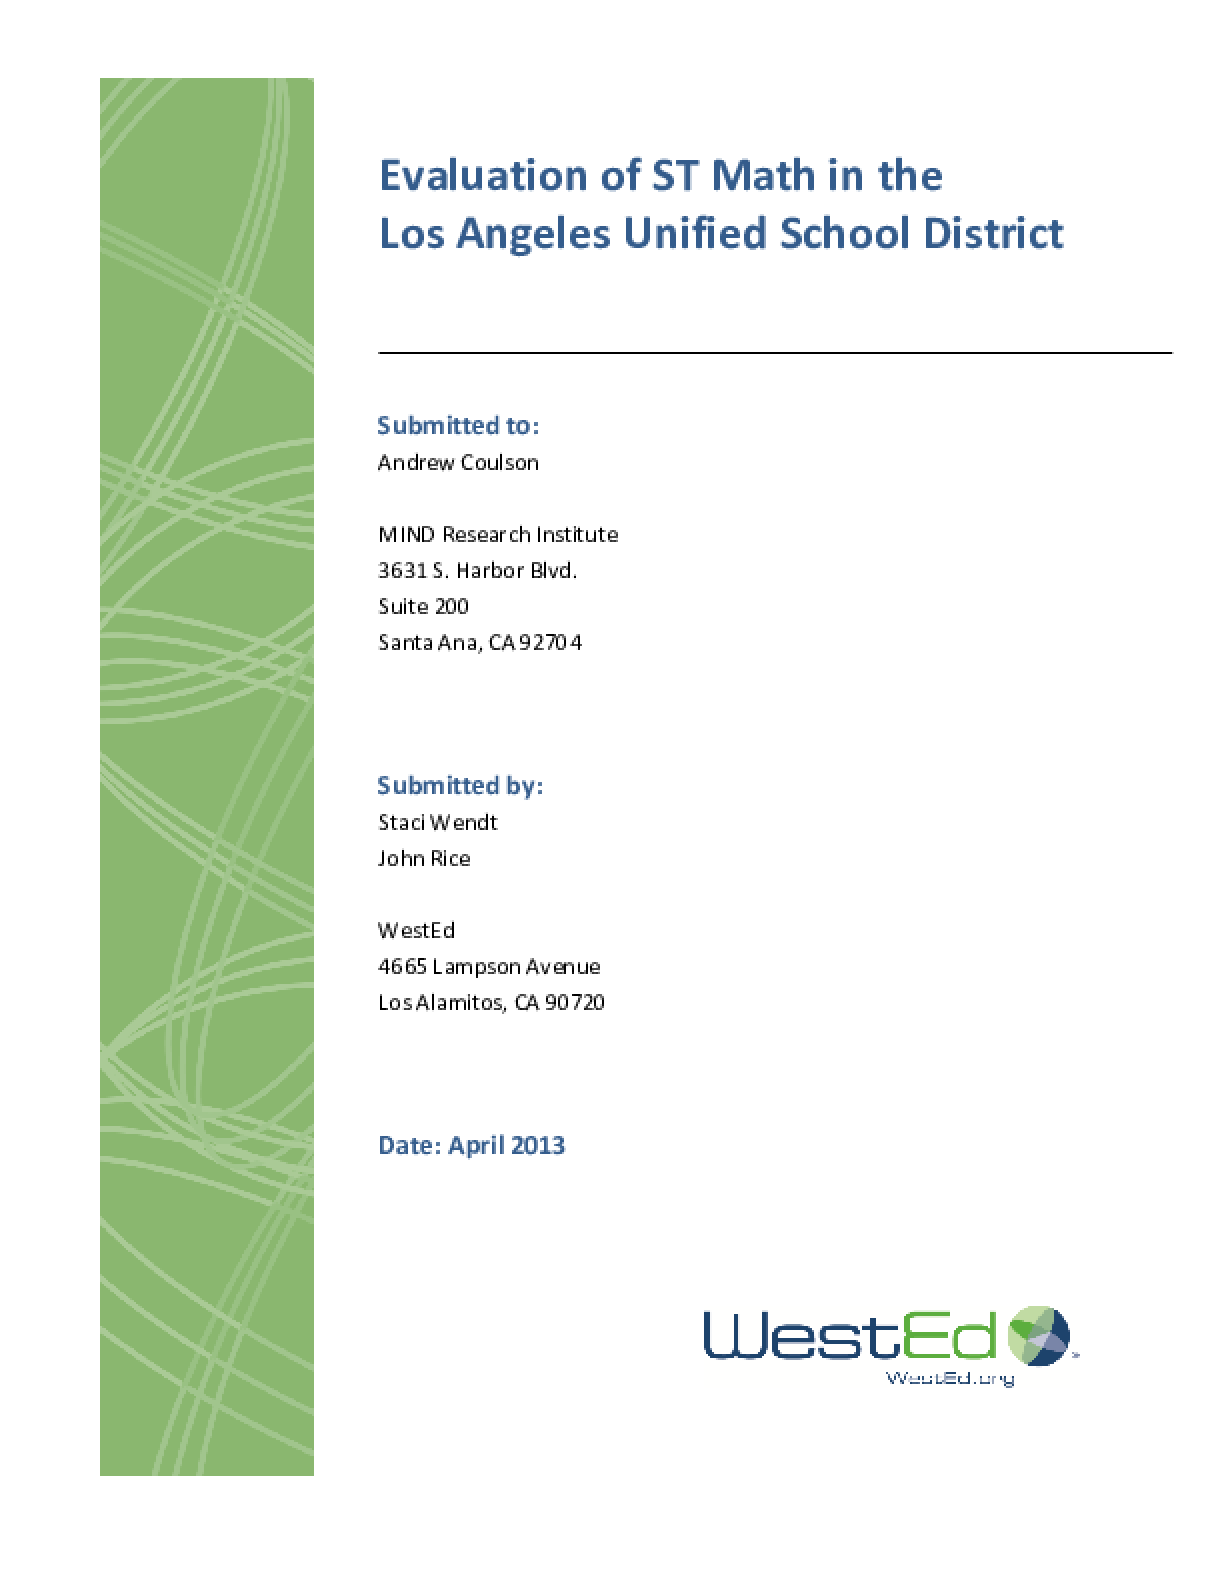 Evaluation of ST Math in the Los Angeles Unified School District